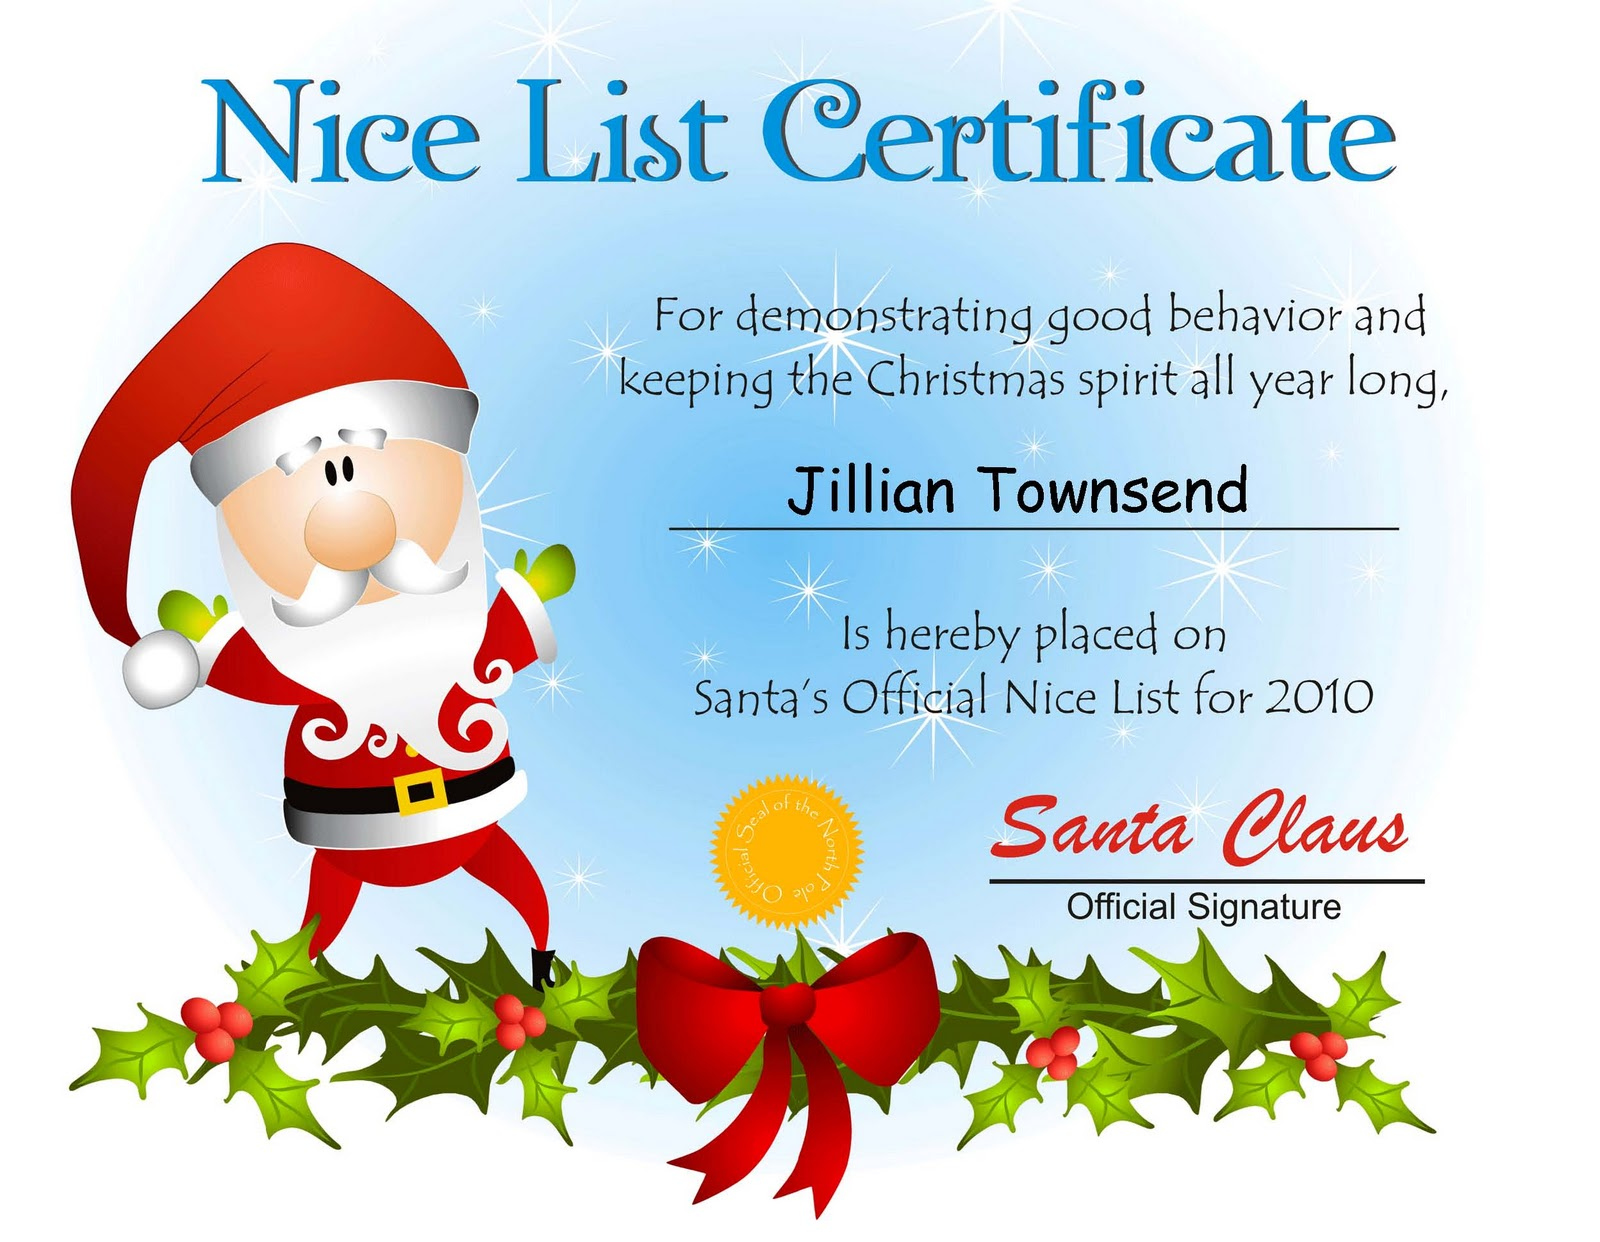 photograph about Printable Santa Nice List Certificate identified as Santa Claus Certification Template. letters upon pinterest